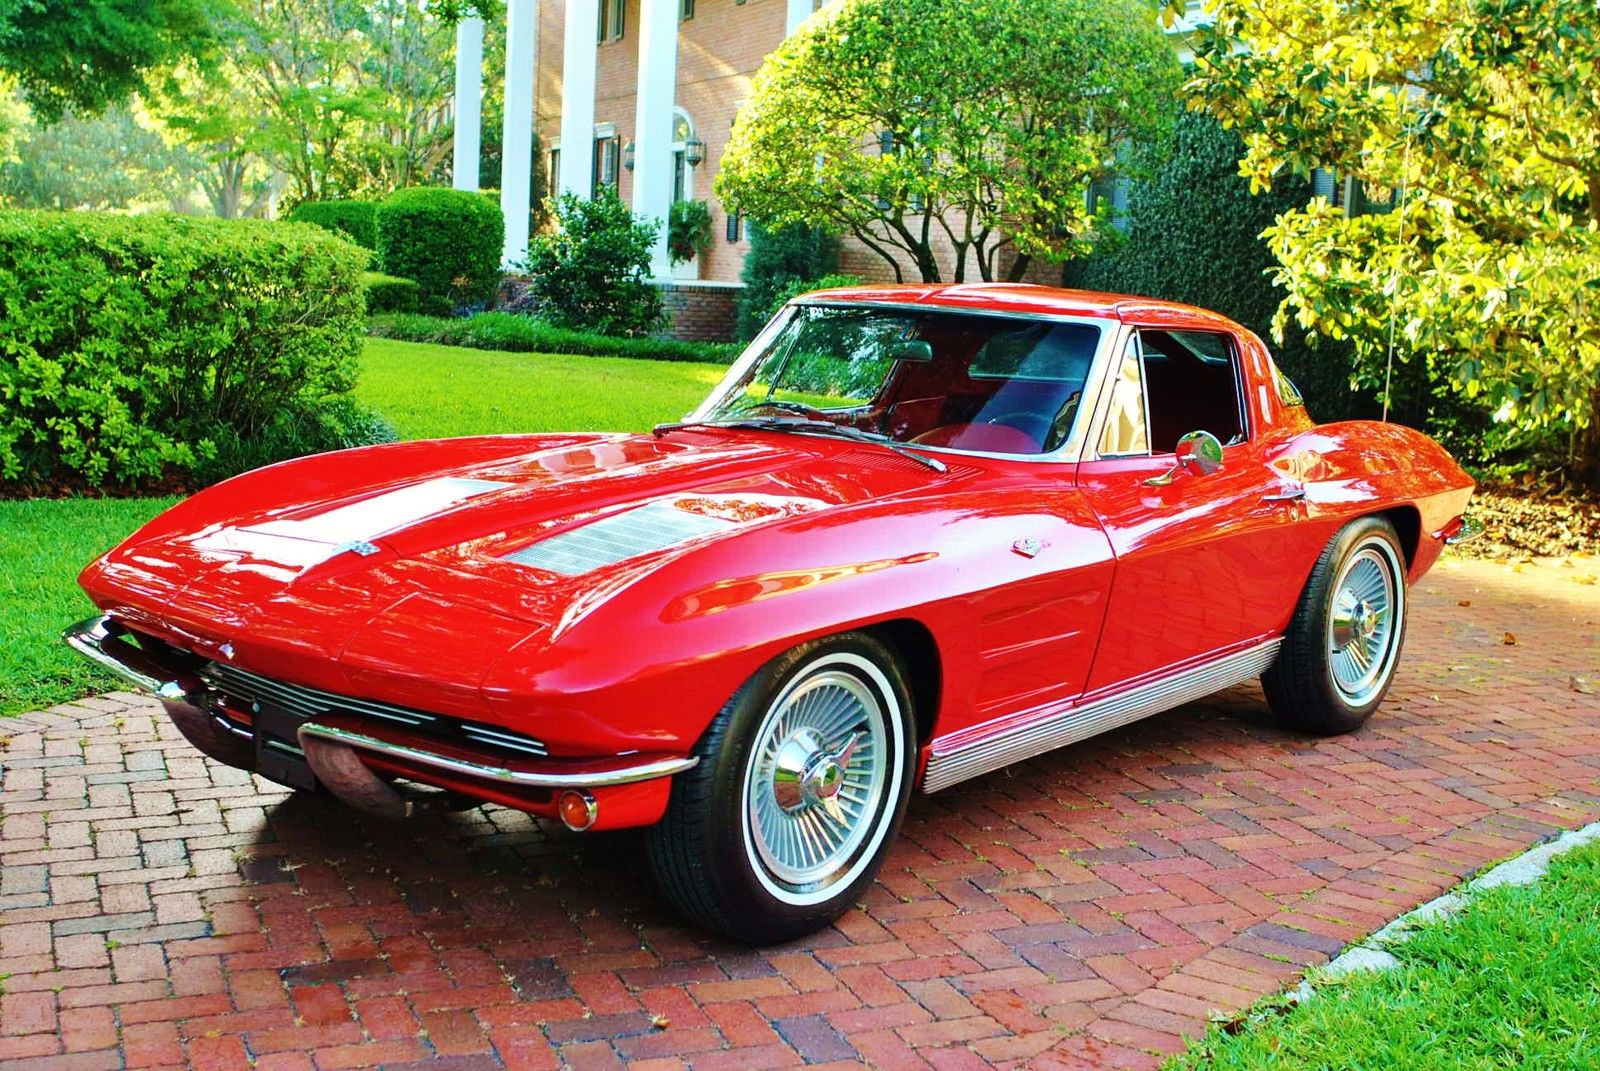 1963 chevrolet corvette split window 327 v8 muscle car for 1963 split window coupe corvette